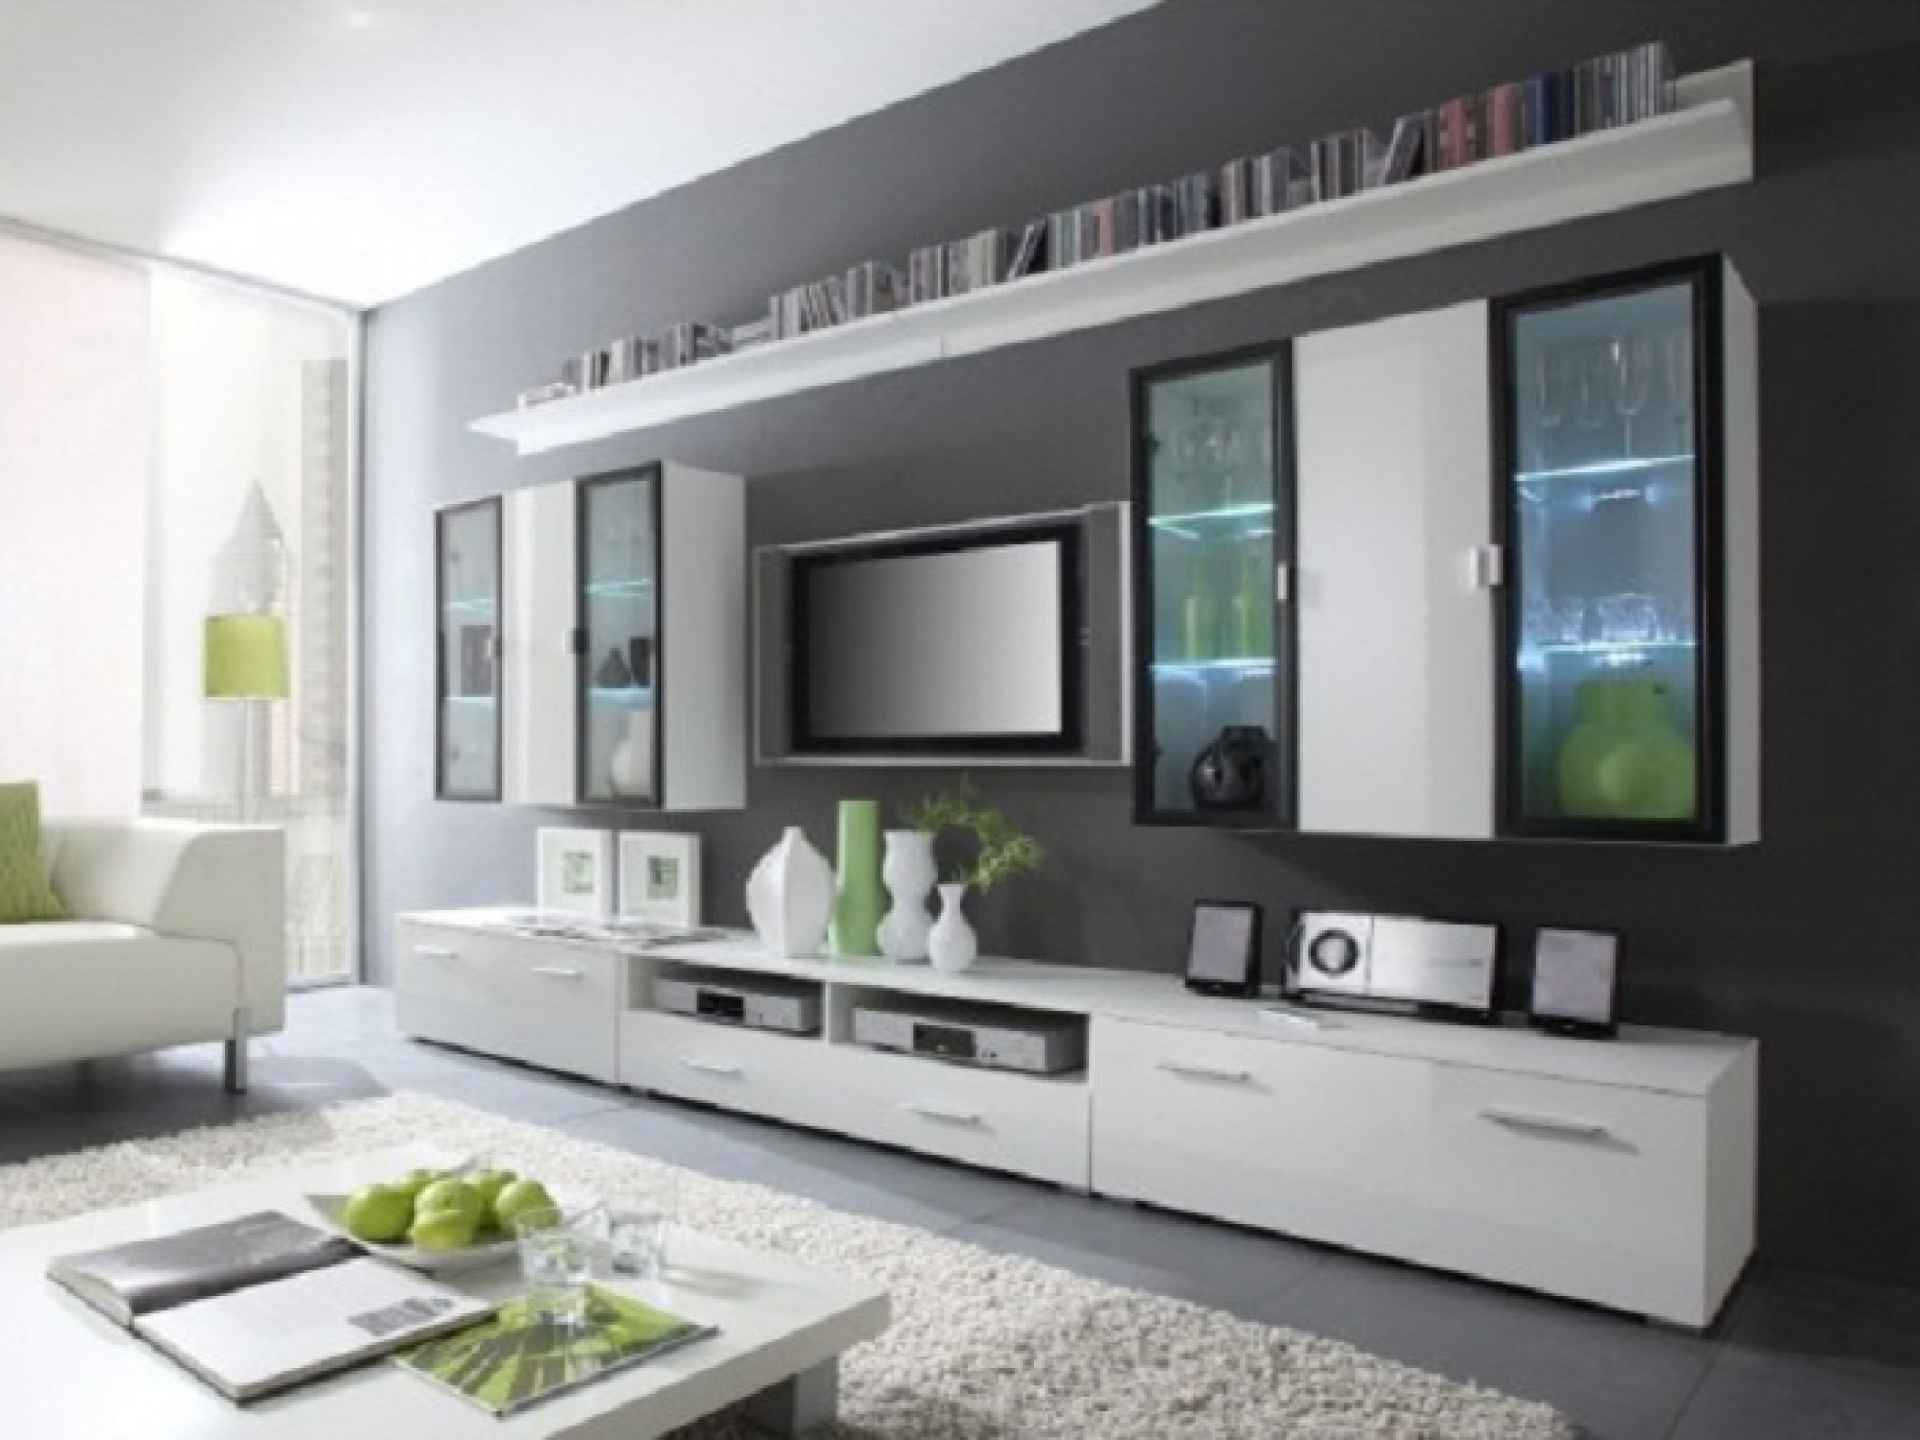 Tv Stands: 10 Amazing Flat Screen Media Cabinet Design Ideas Flat In Best And Newest White Tv Stands For Flat Screens (View 11 of 20)